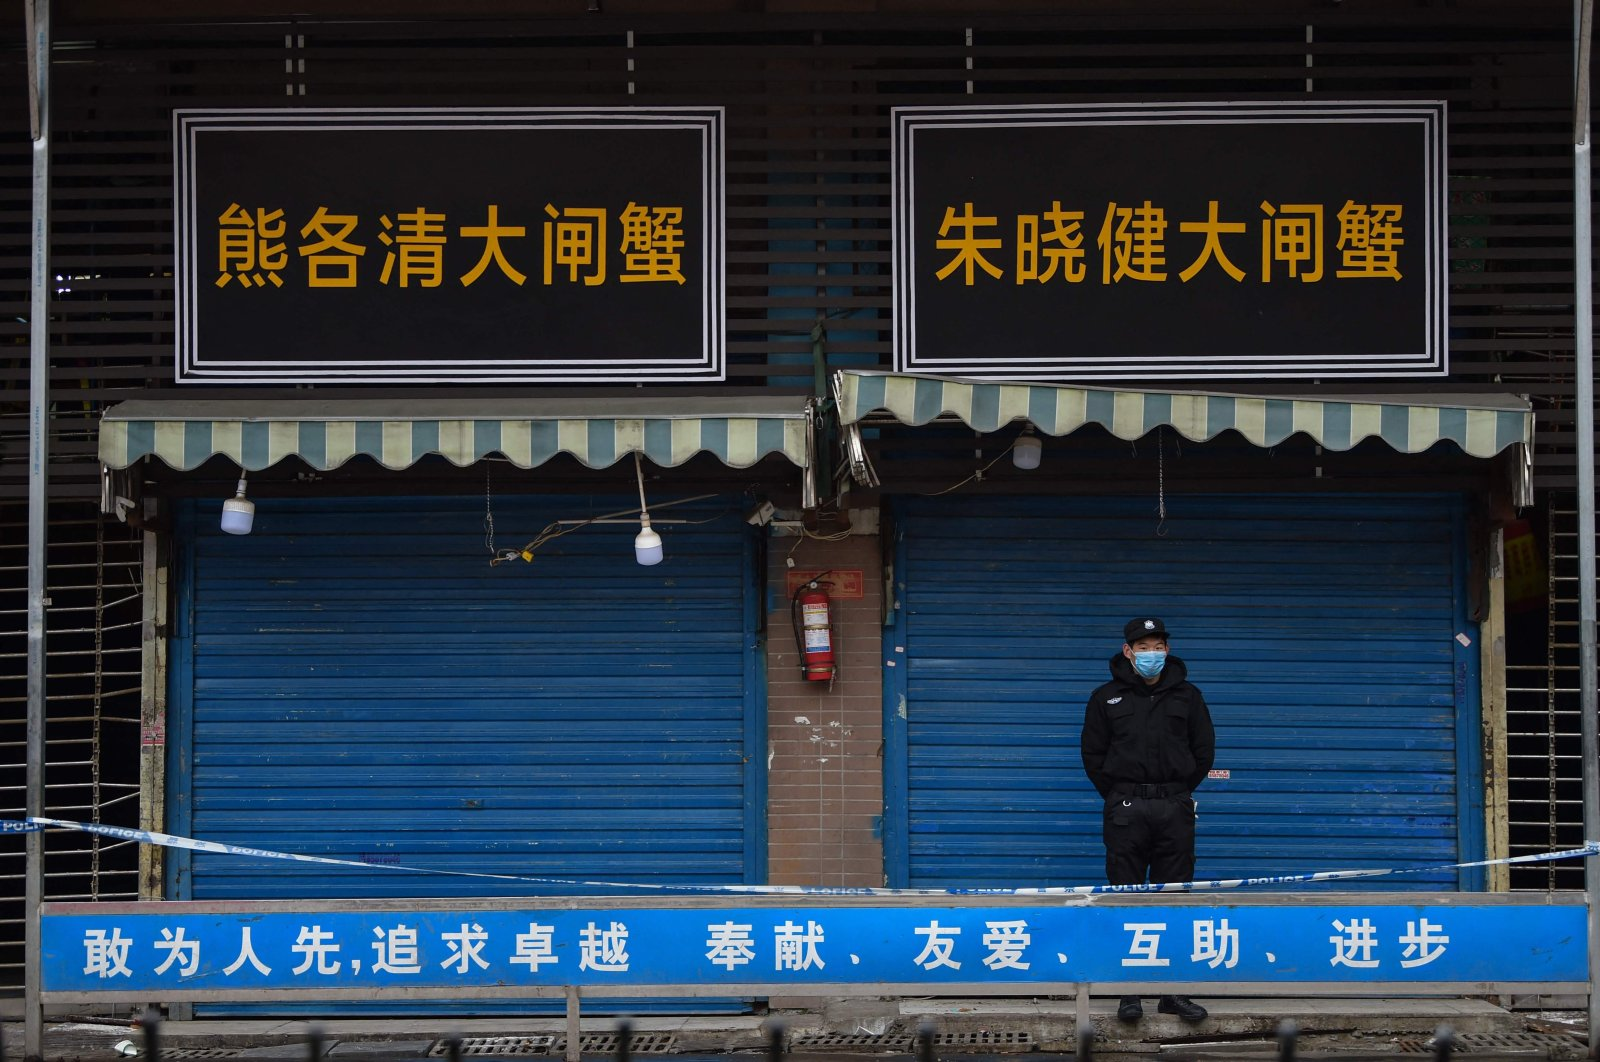 A security guard stands outside the Huanan Seafood Wholesale Market where the coronavirus was detected in Wuhan, China, Jan. 24, 2020. (Photo by Hector RETAMAL / AFP)